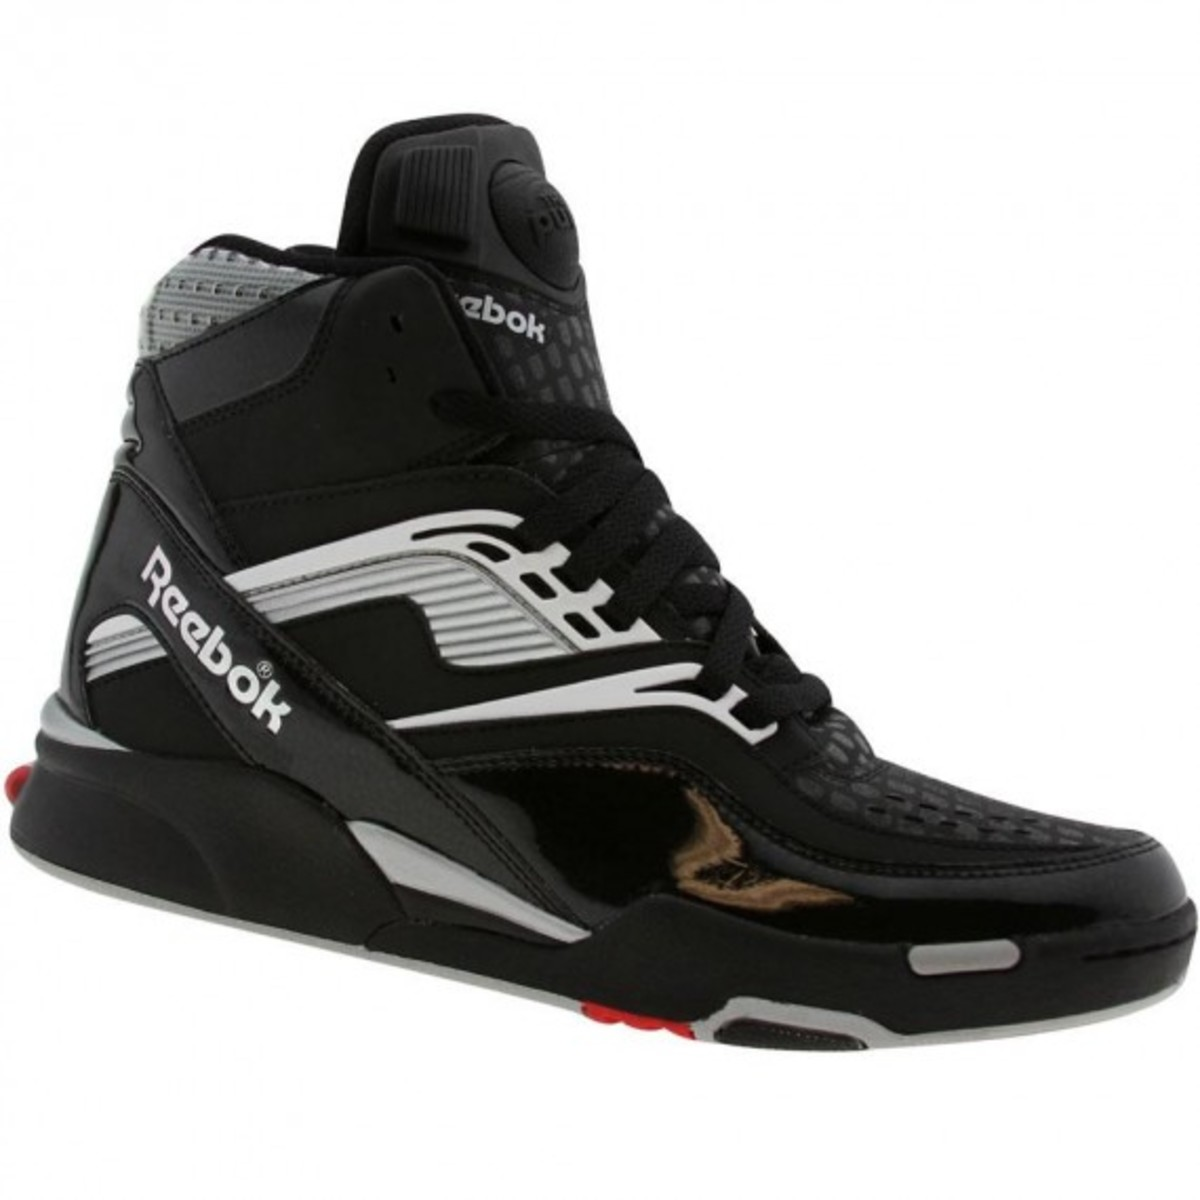 pick-your-shoes-reebok-twilight-zone-pump-bberry-03